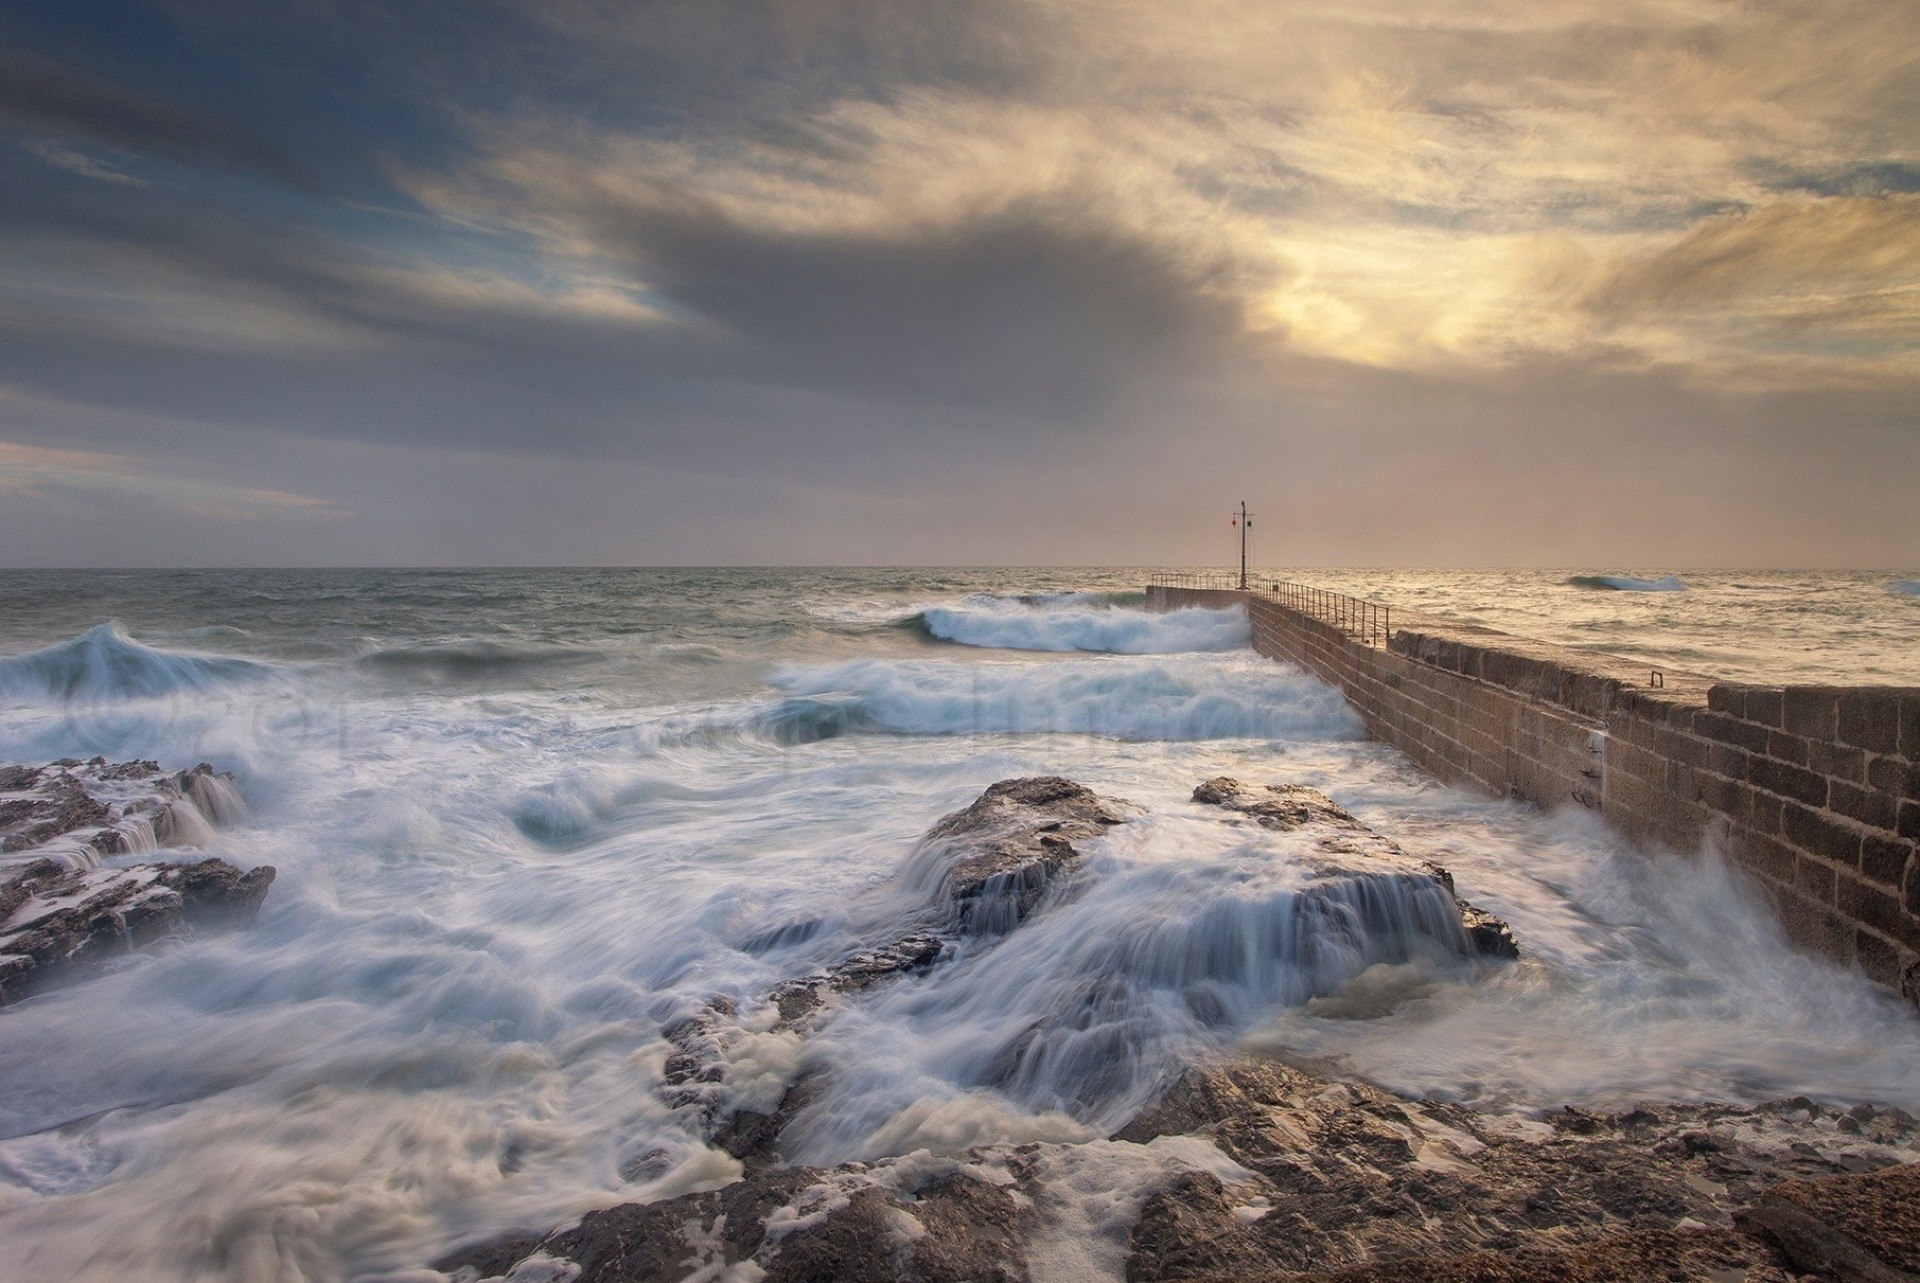 Chris Marshall (TwoScoops)'s photo of Porthleven